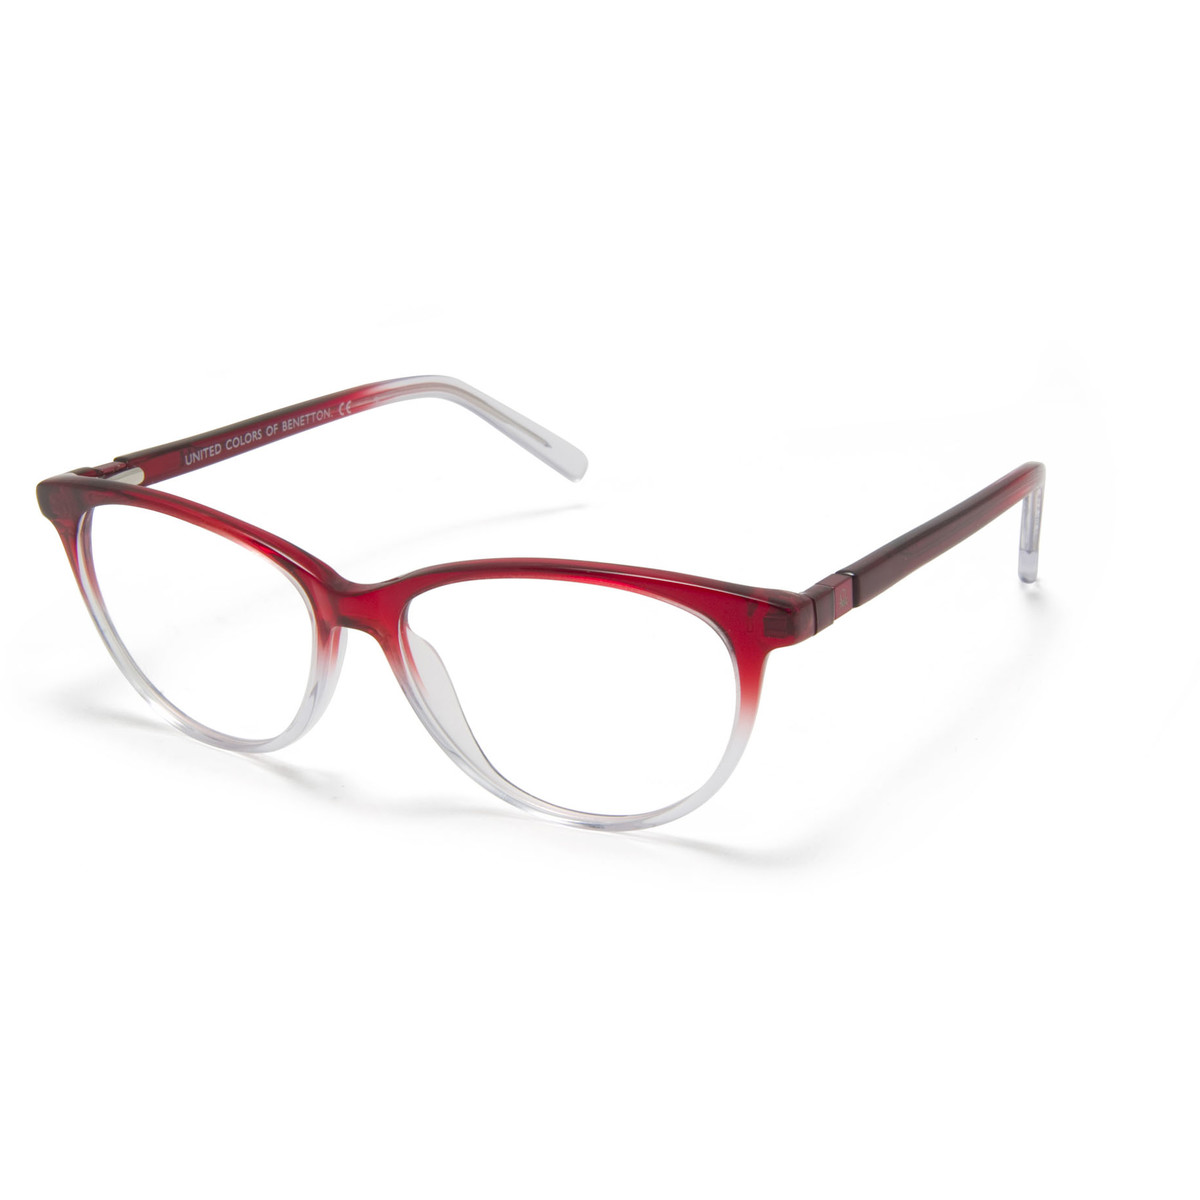 Rame ochelari vedere dama UNITED COLORS OF BENETTON BN251V03 de la United Colors of Benetton